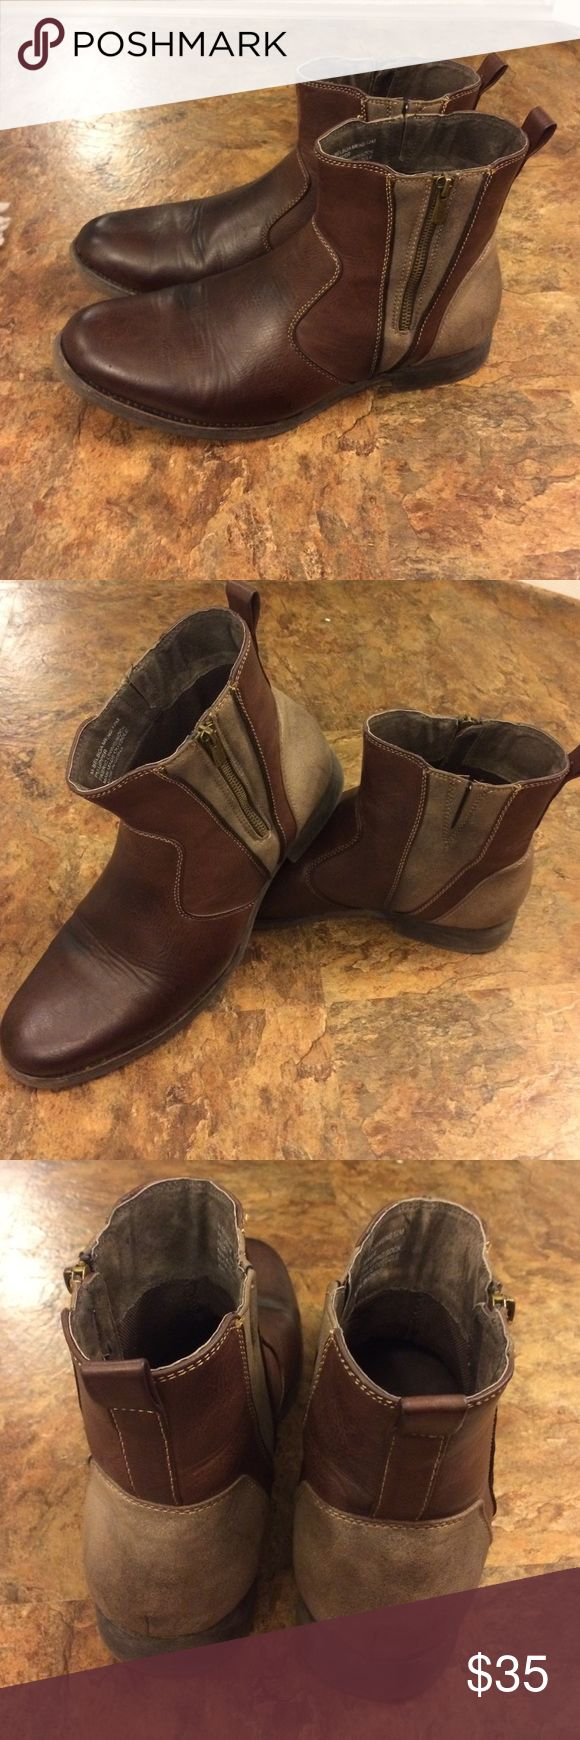 Steve Madden men's ankle boots zip up Handsome brown size 12 men's Madden ankle boots. Steve Madden Shoes Boots